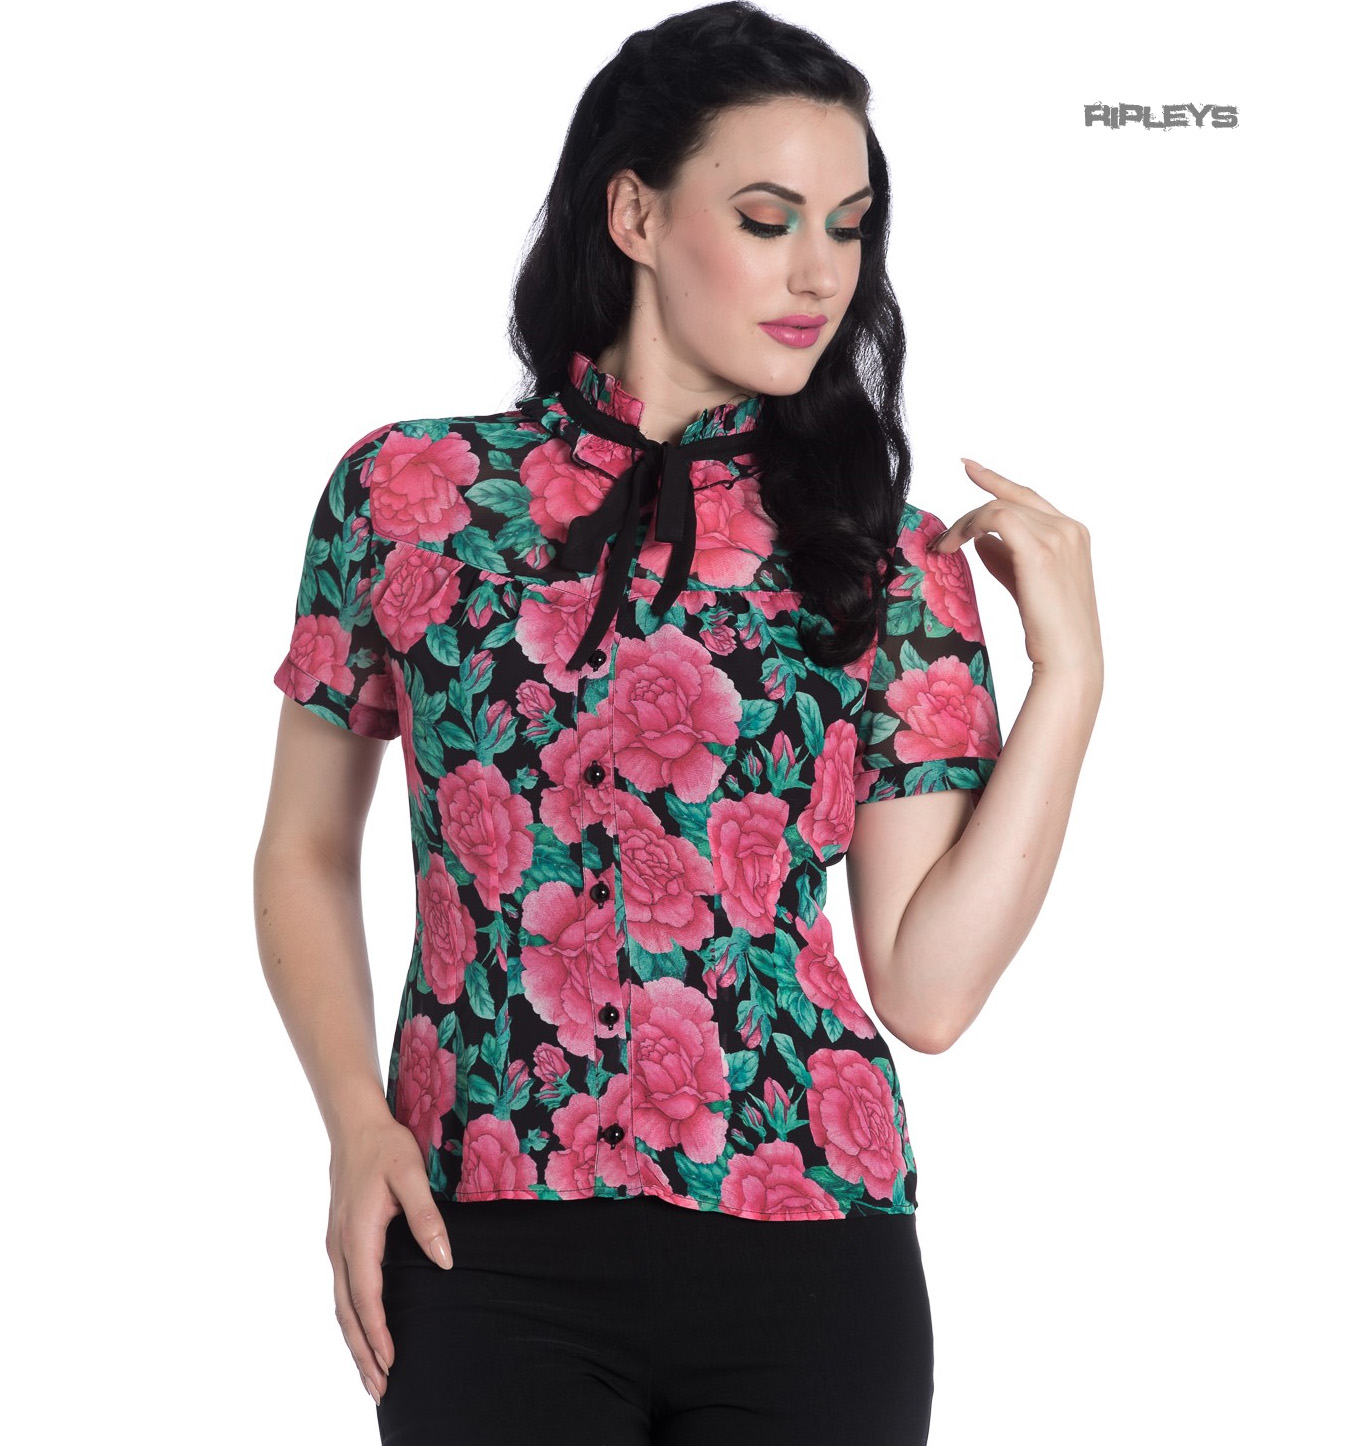 Hell-Bunny-Shirt-Top-Flowers-Roses-EDEN-ROSE-Black-Pink-Blouse-All-Sizes thumbnail 10